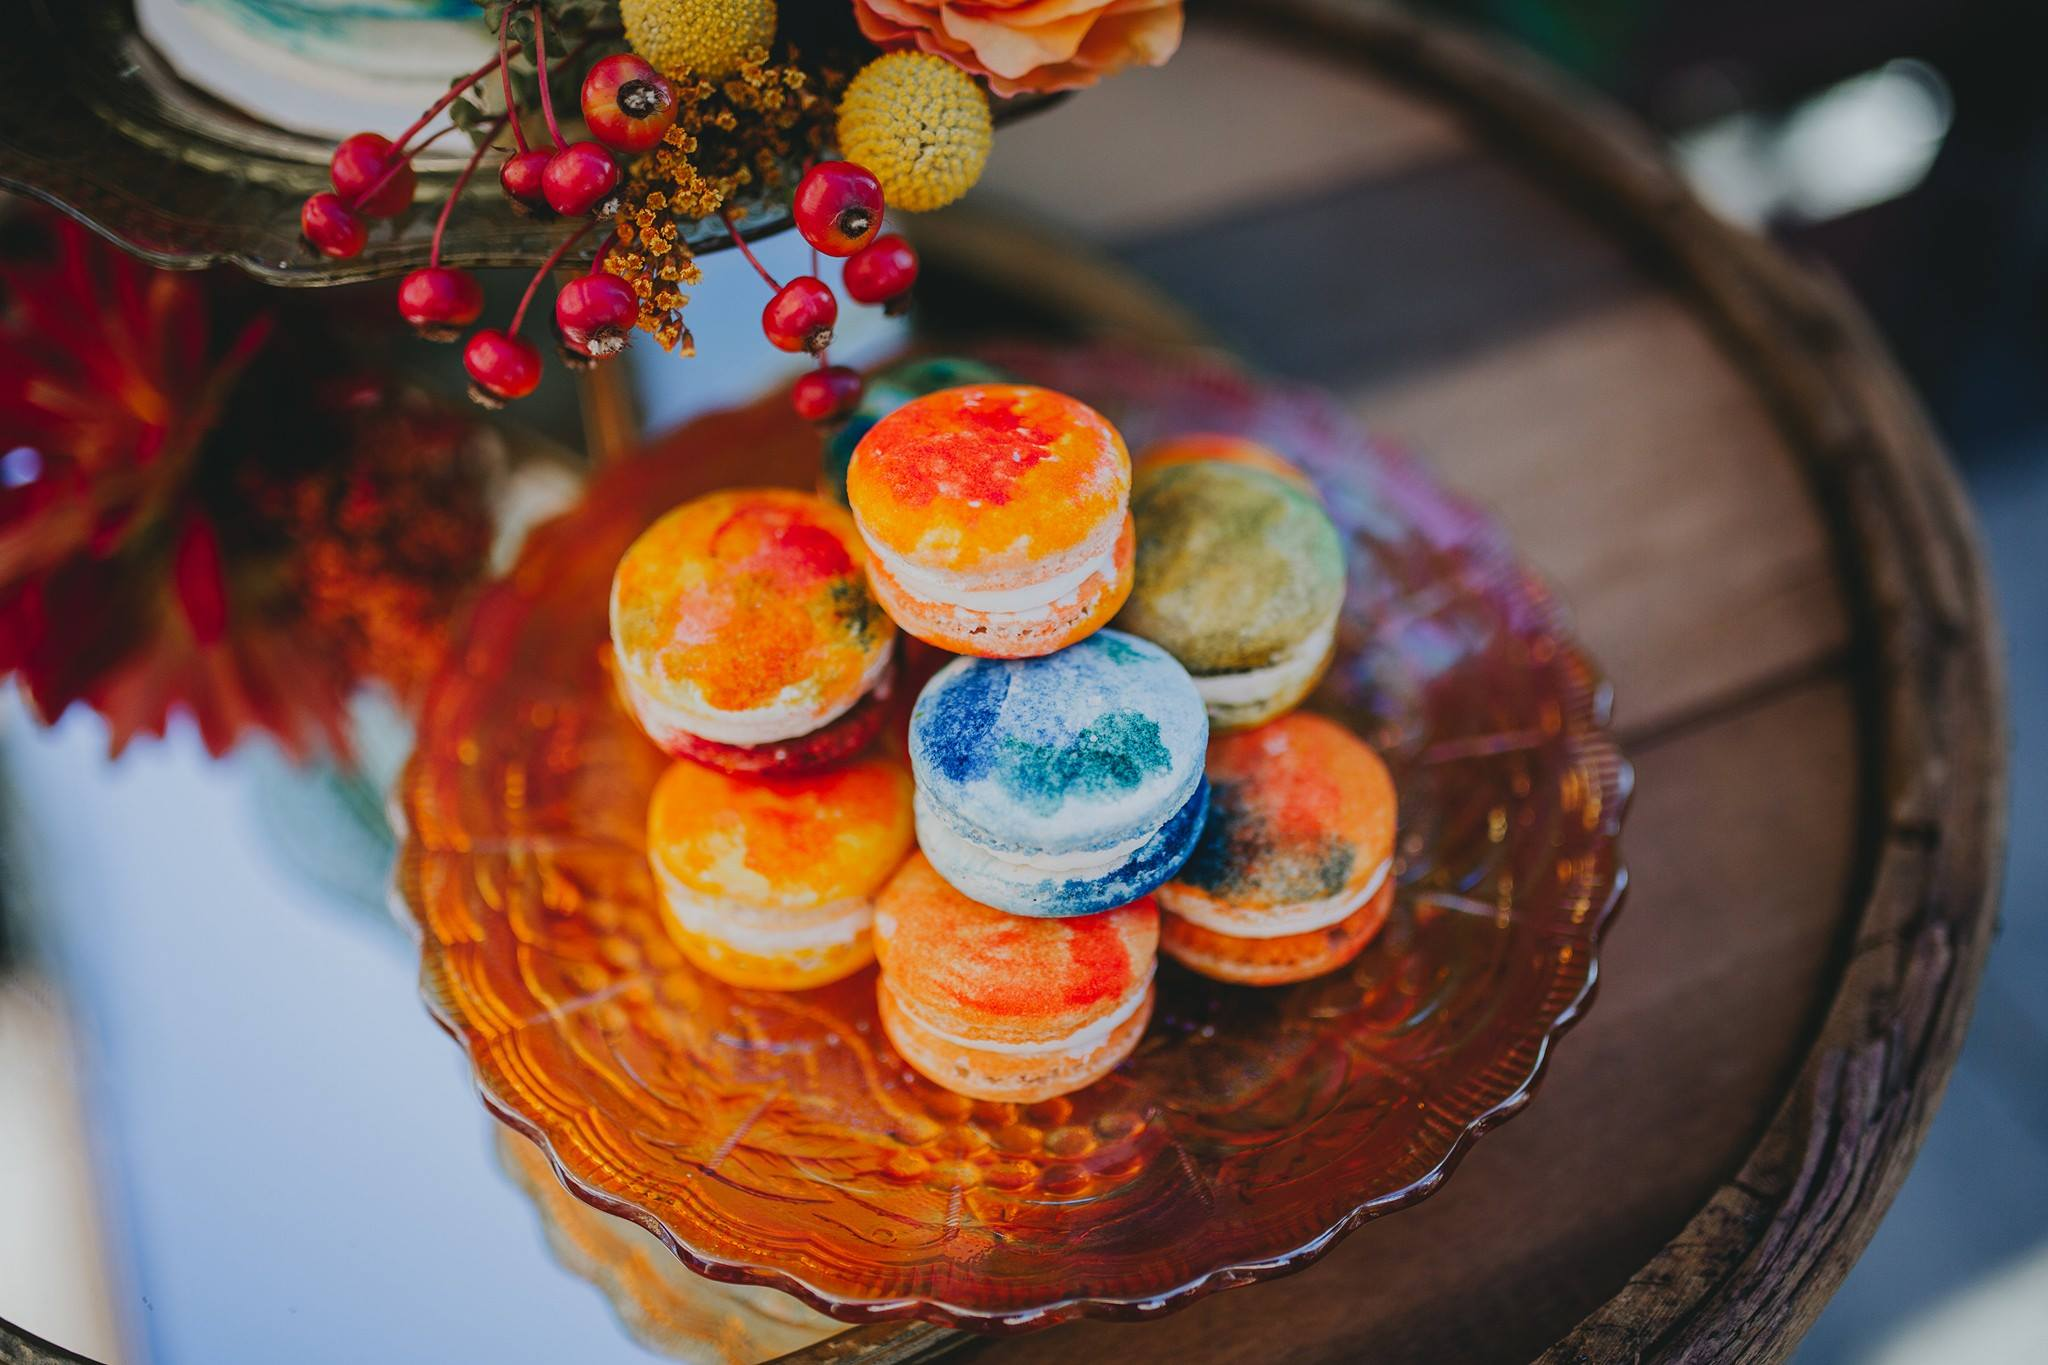 Macarons, made-from-scratch pies, and more...